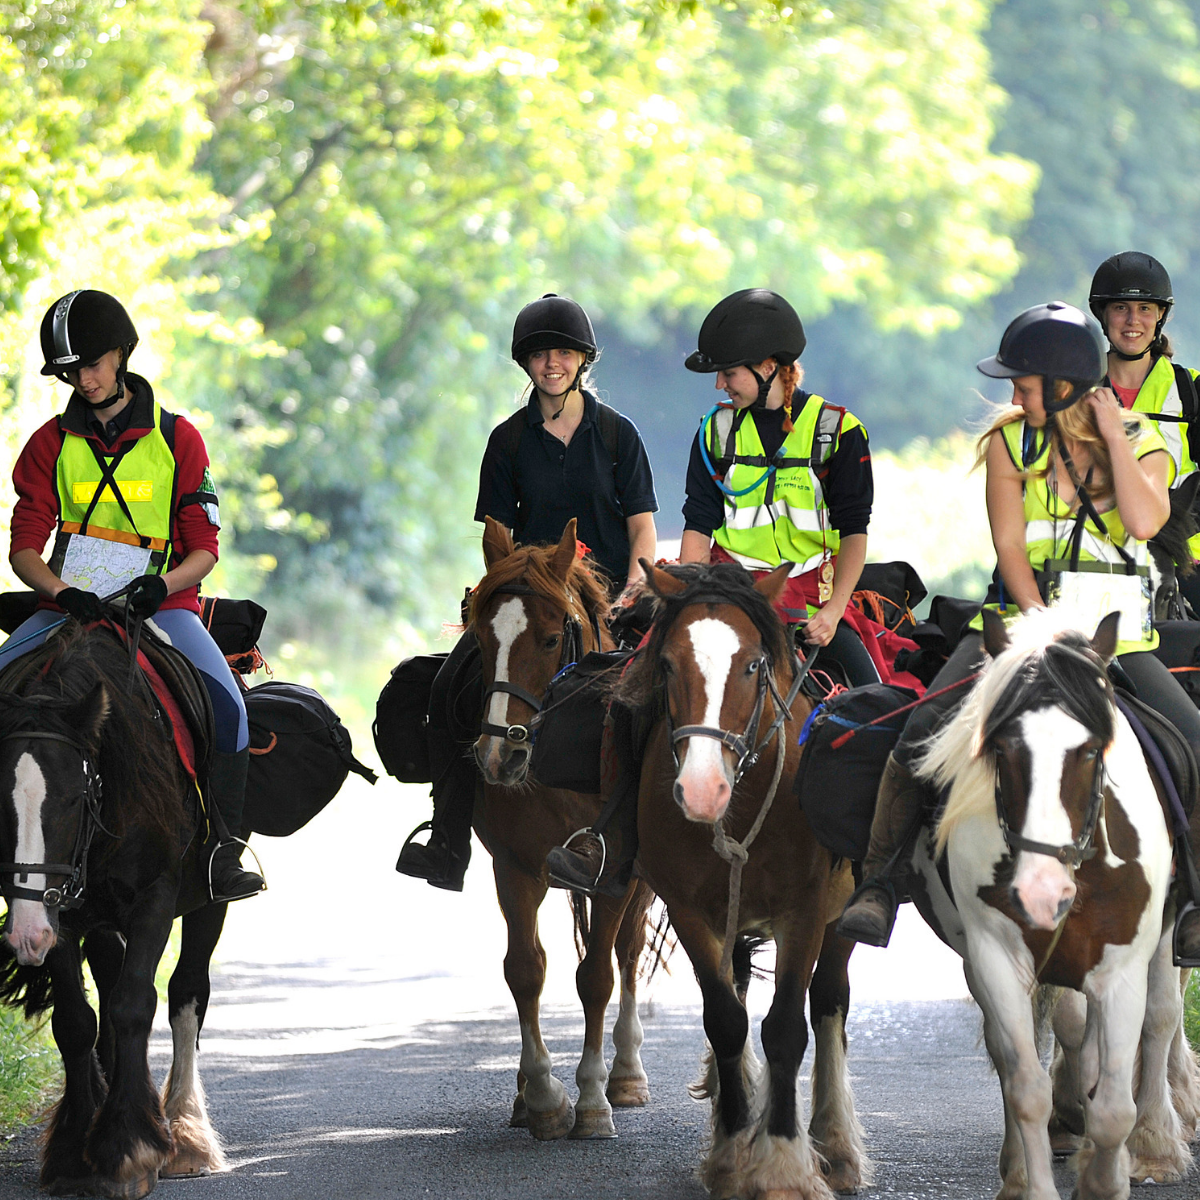 Group of young girls horseriding wearing high-vis jackets